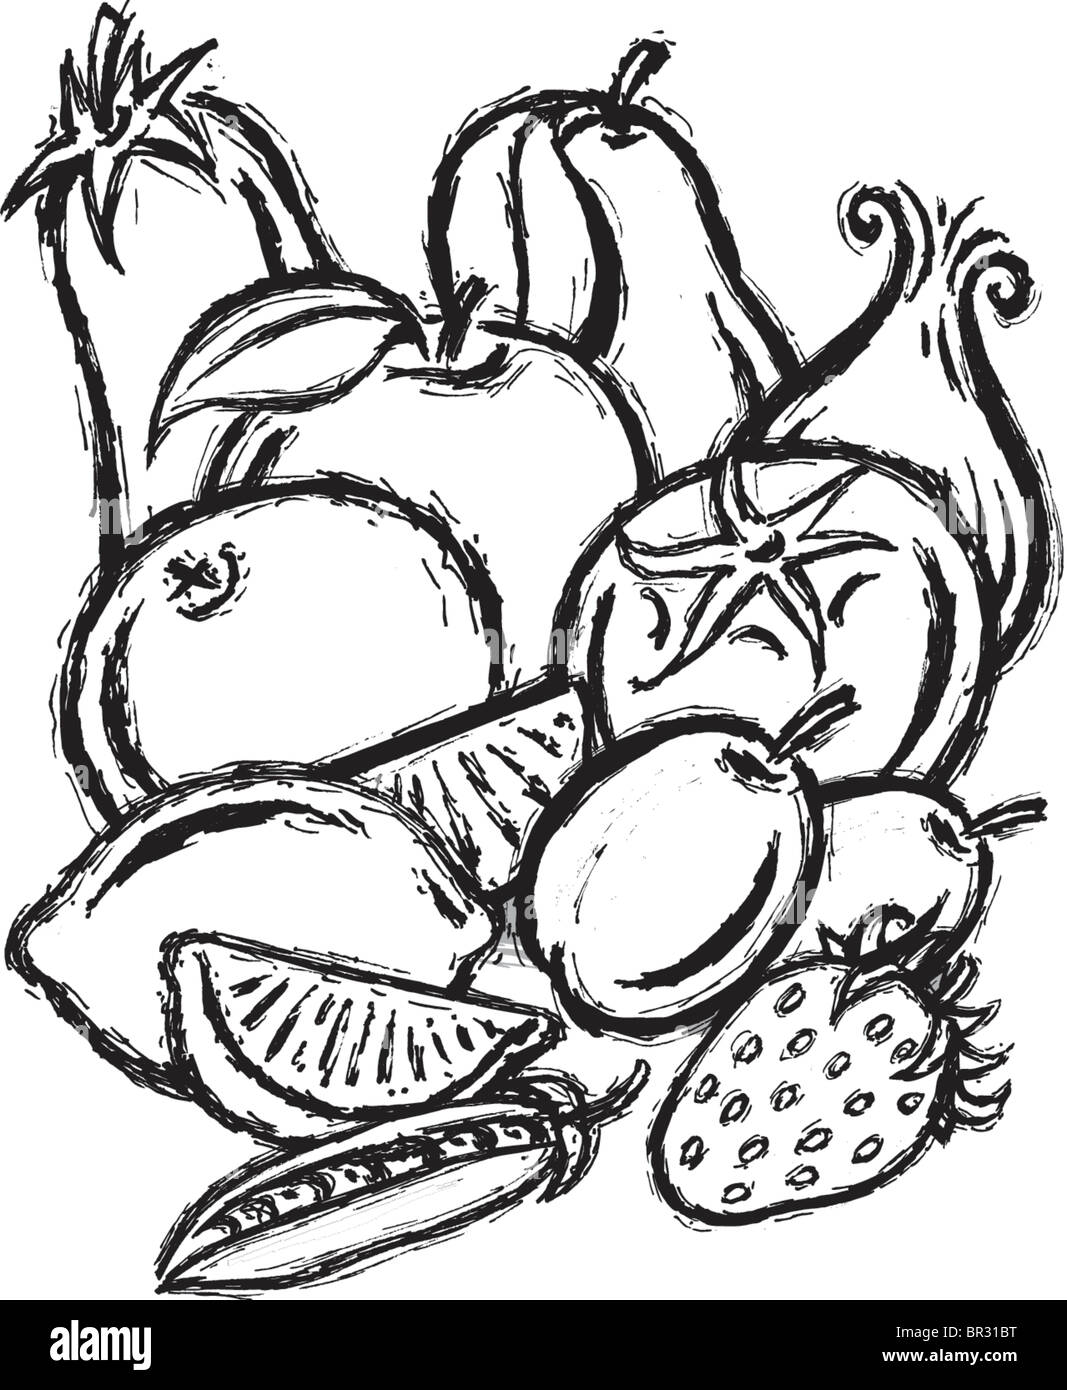 A black and white illustration of fruit and vegetable medley - Stock Image